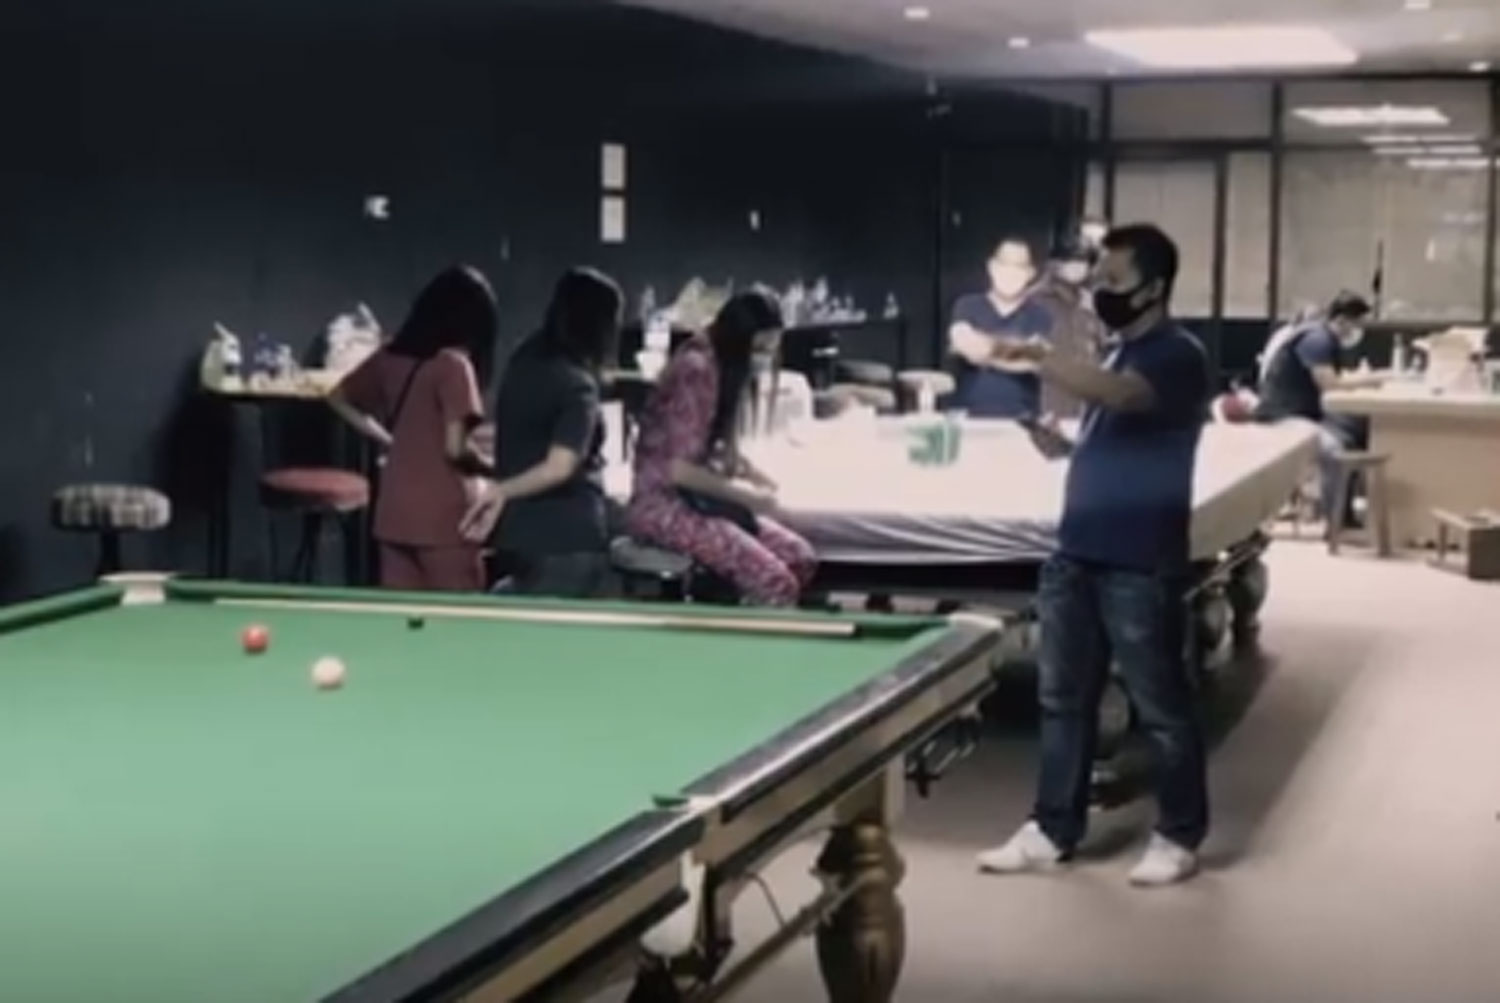 Police raid a snooker shop used as a gambling den in Bangkok's Saphan Sung area on April 22 and arrest 47 people. (Capture from Workpoint TV)